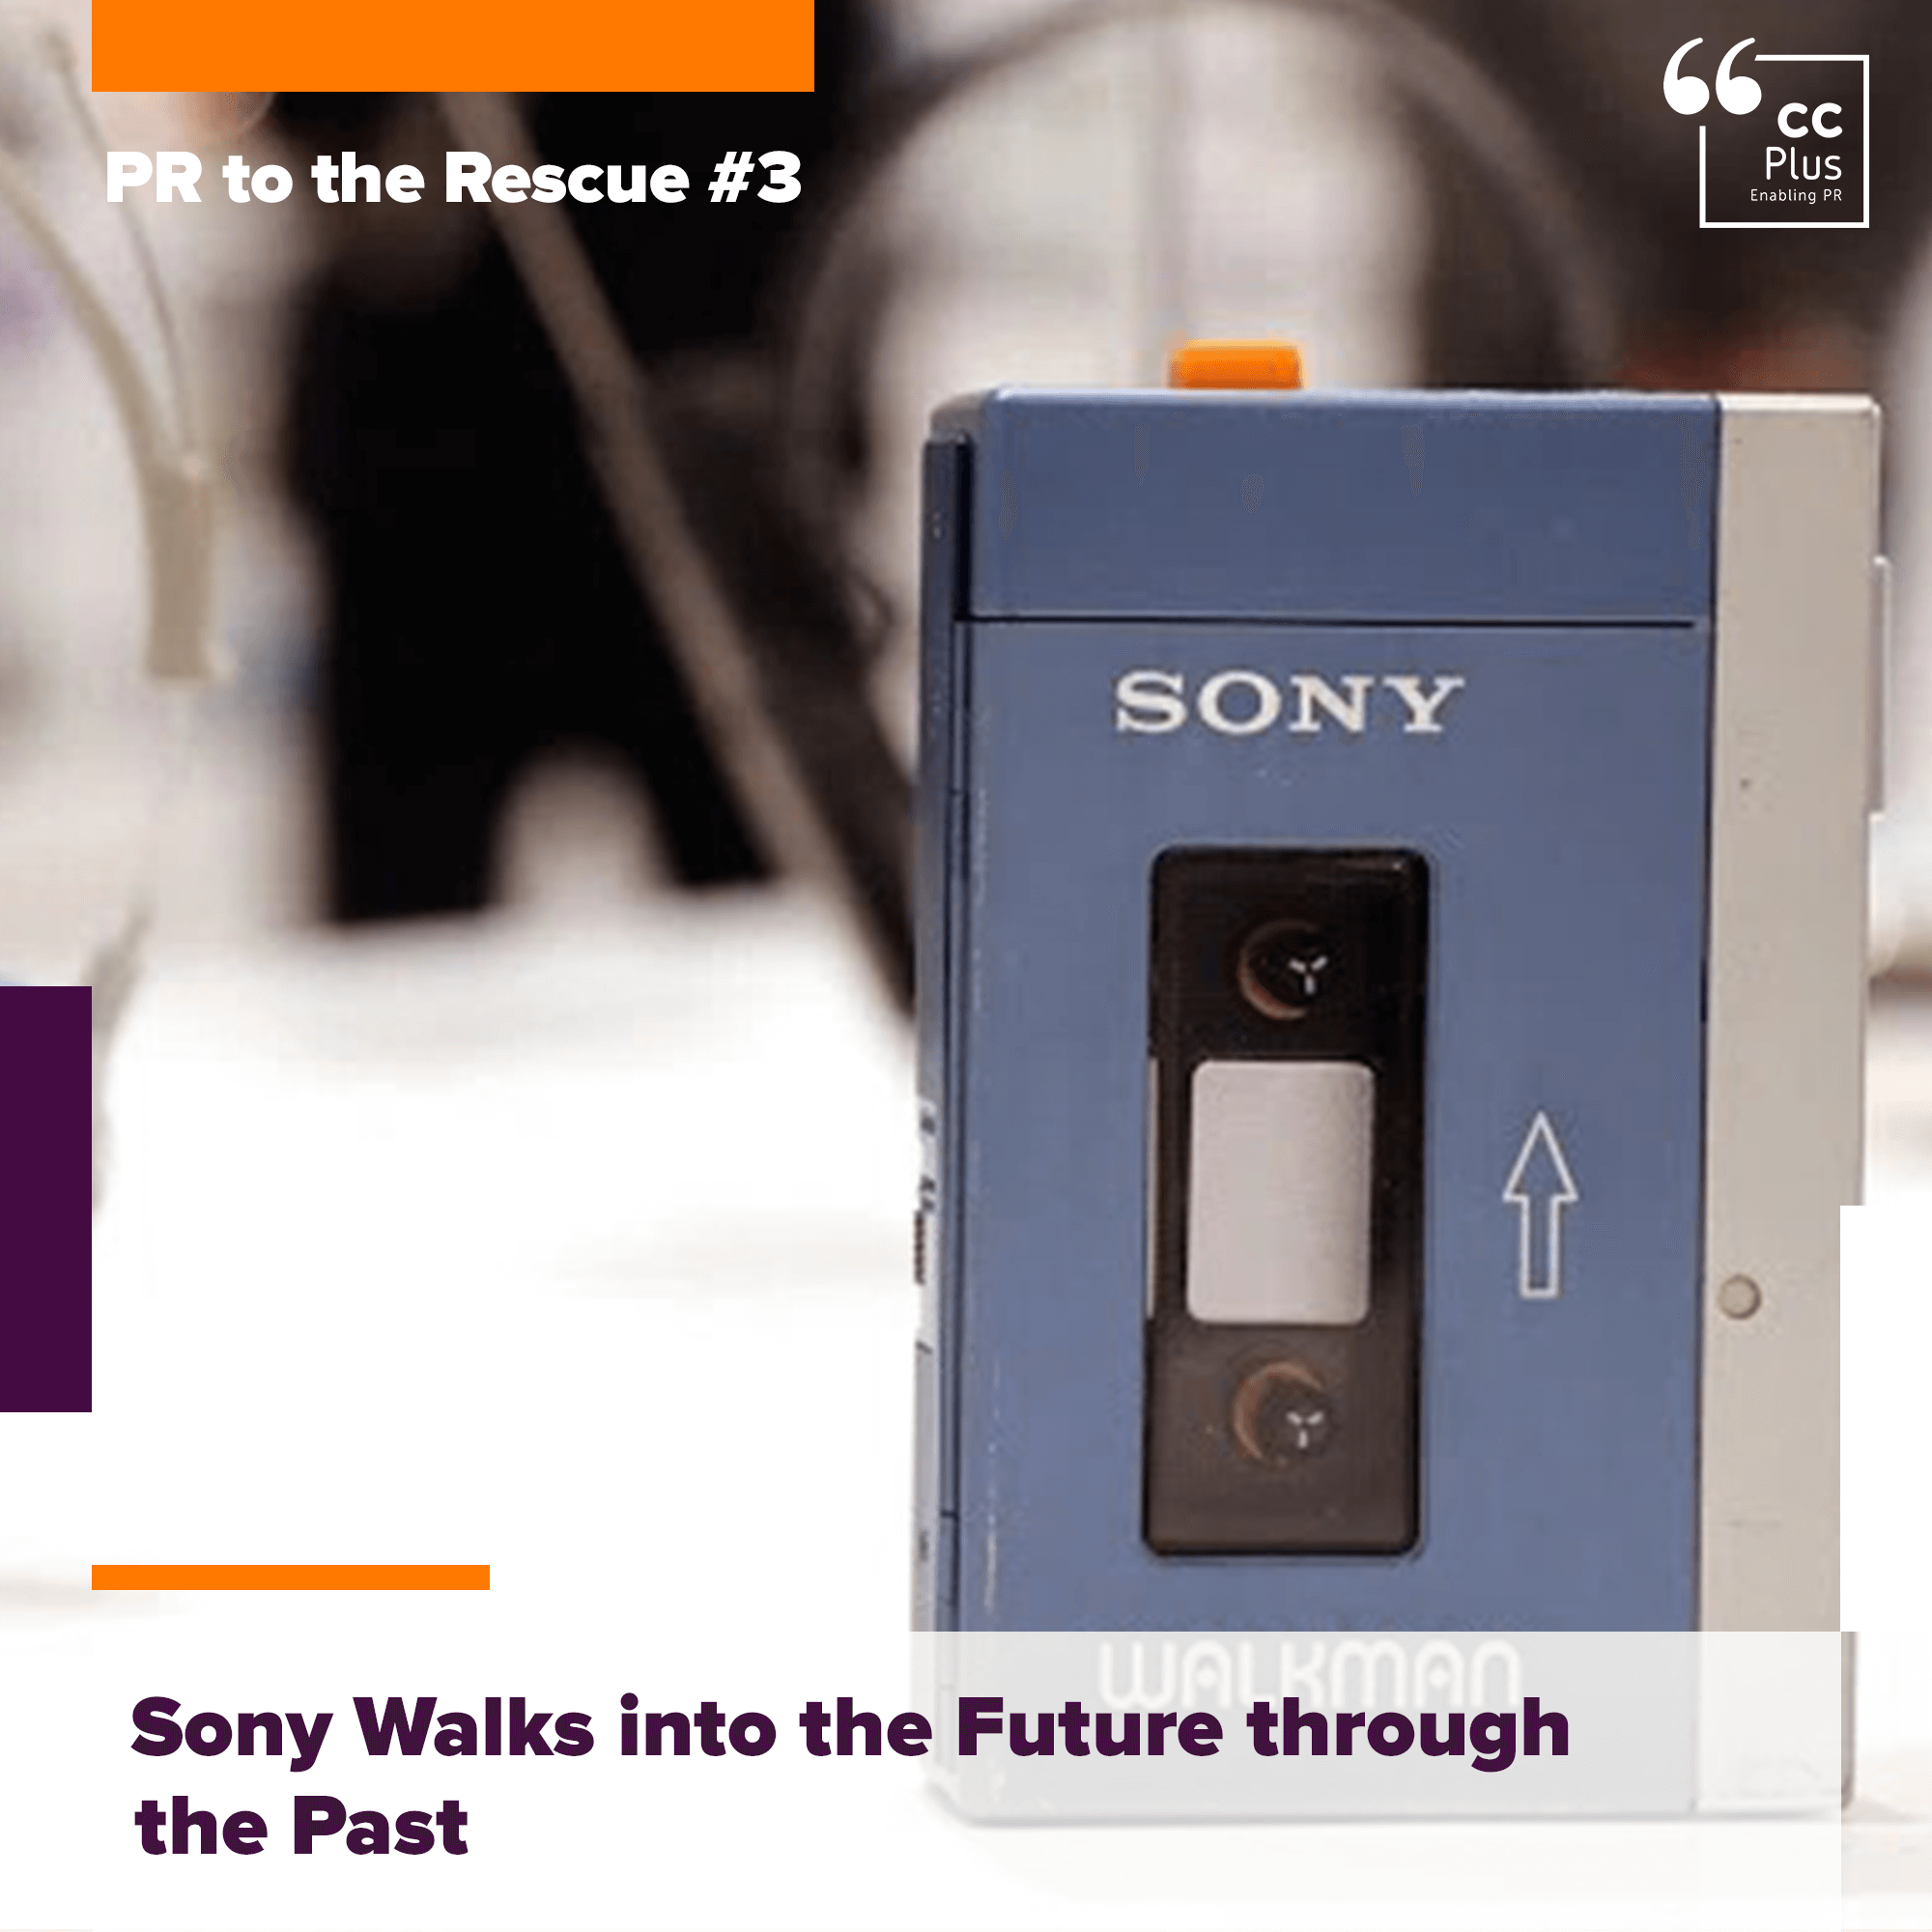 PR to the Rescue #3: Sony Walks into the Future through the Past